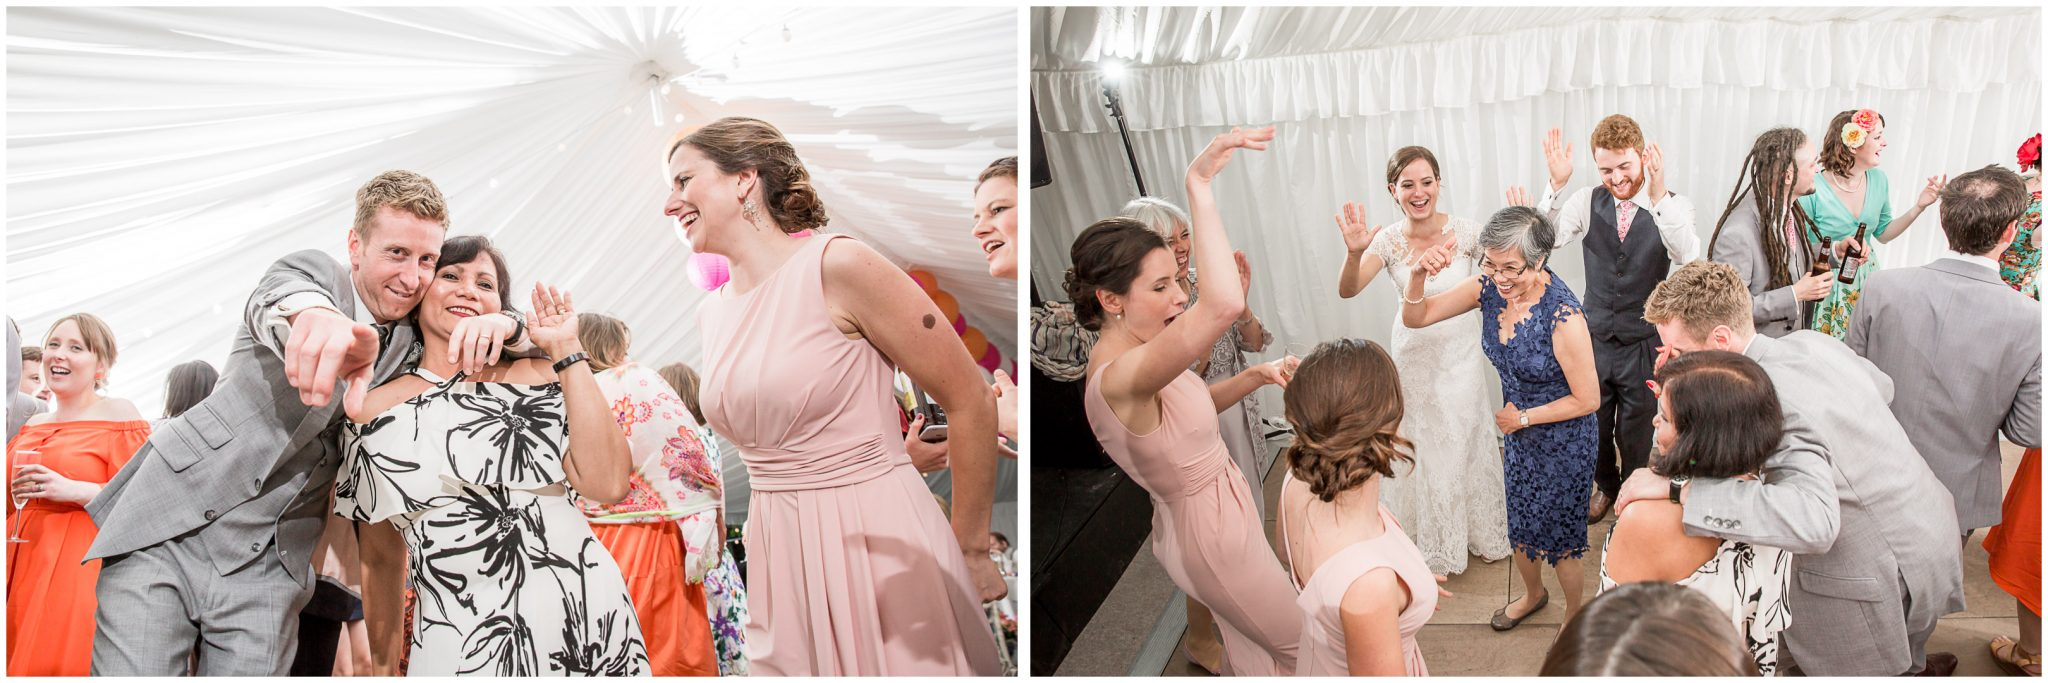 The bridesmaids hit the dancefloor